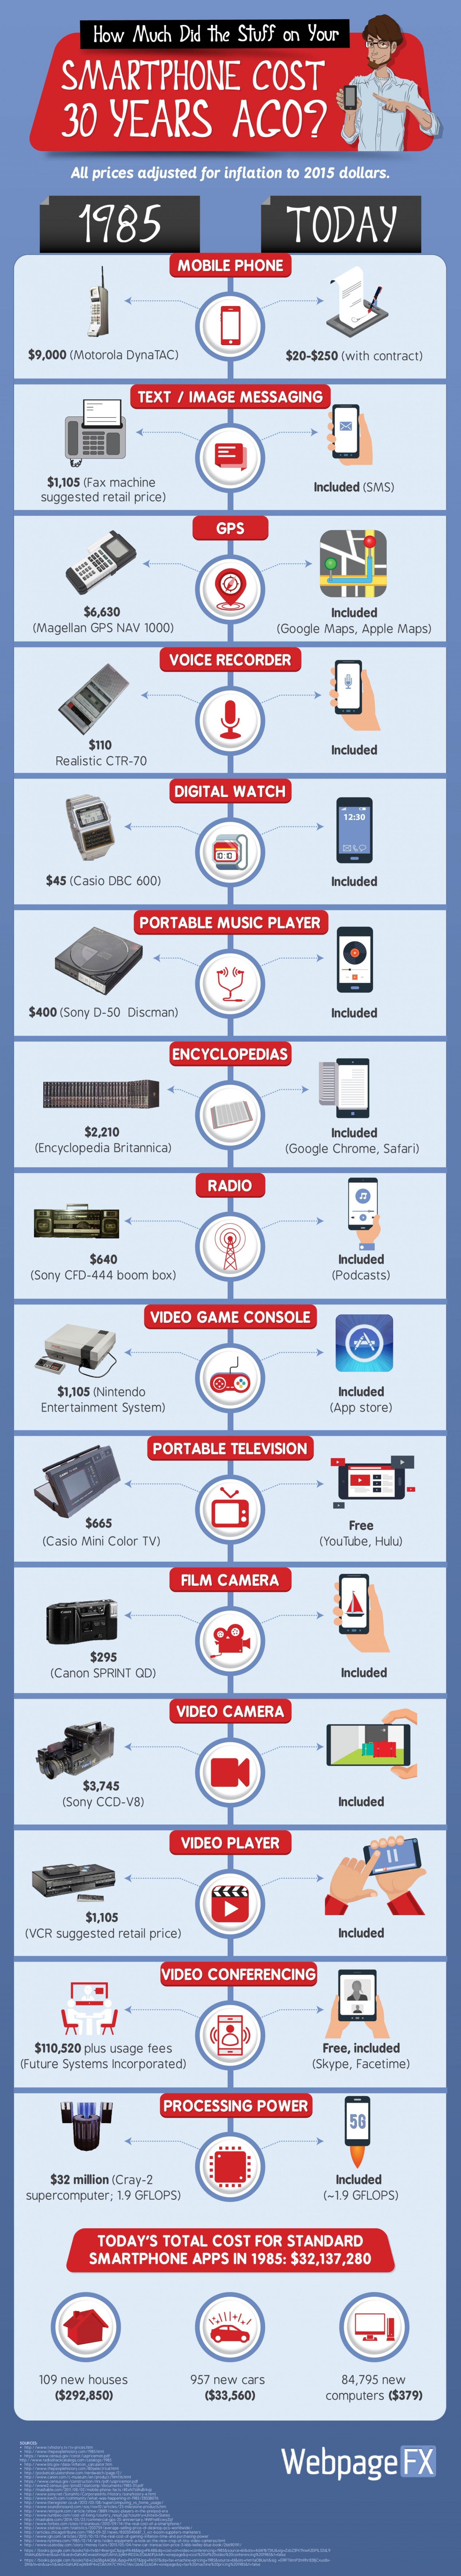 How Much Did the Stuff on Your Smartphone Cost 30 Years Ago? Infographic